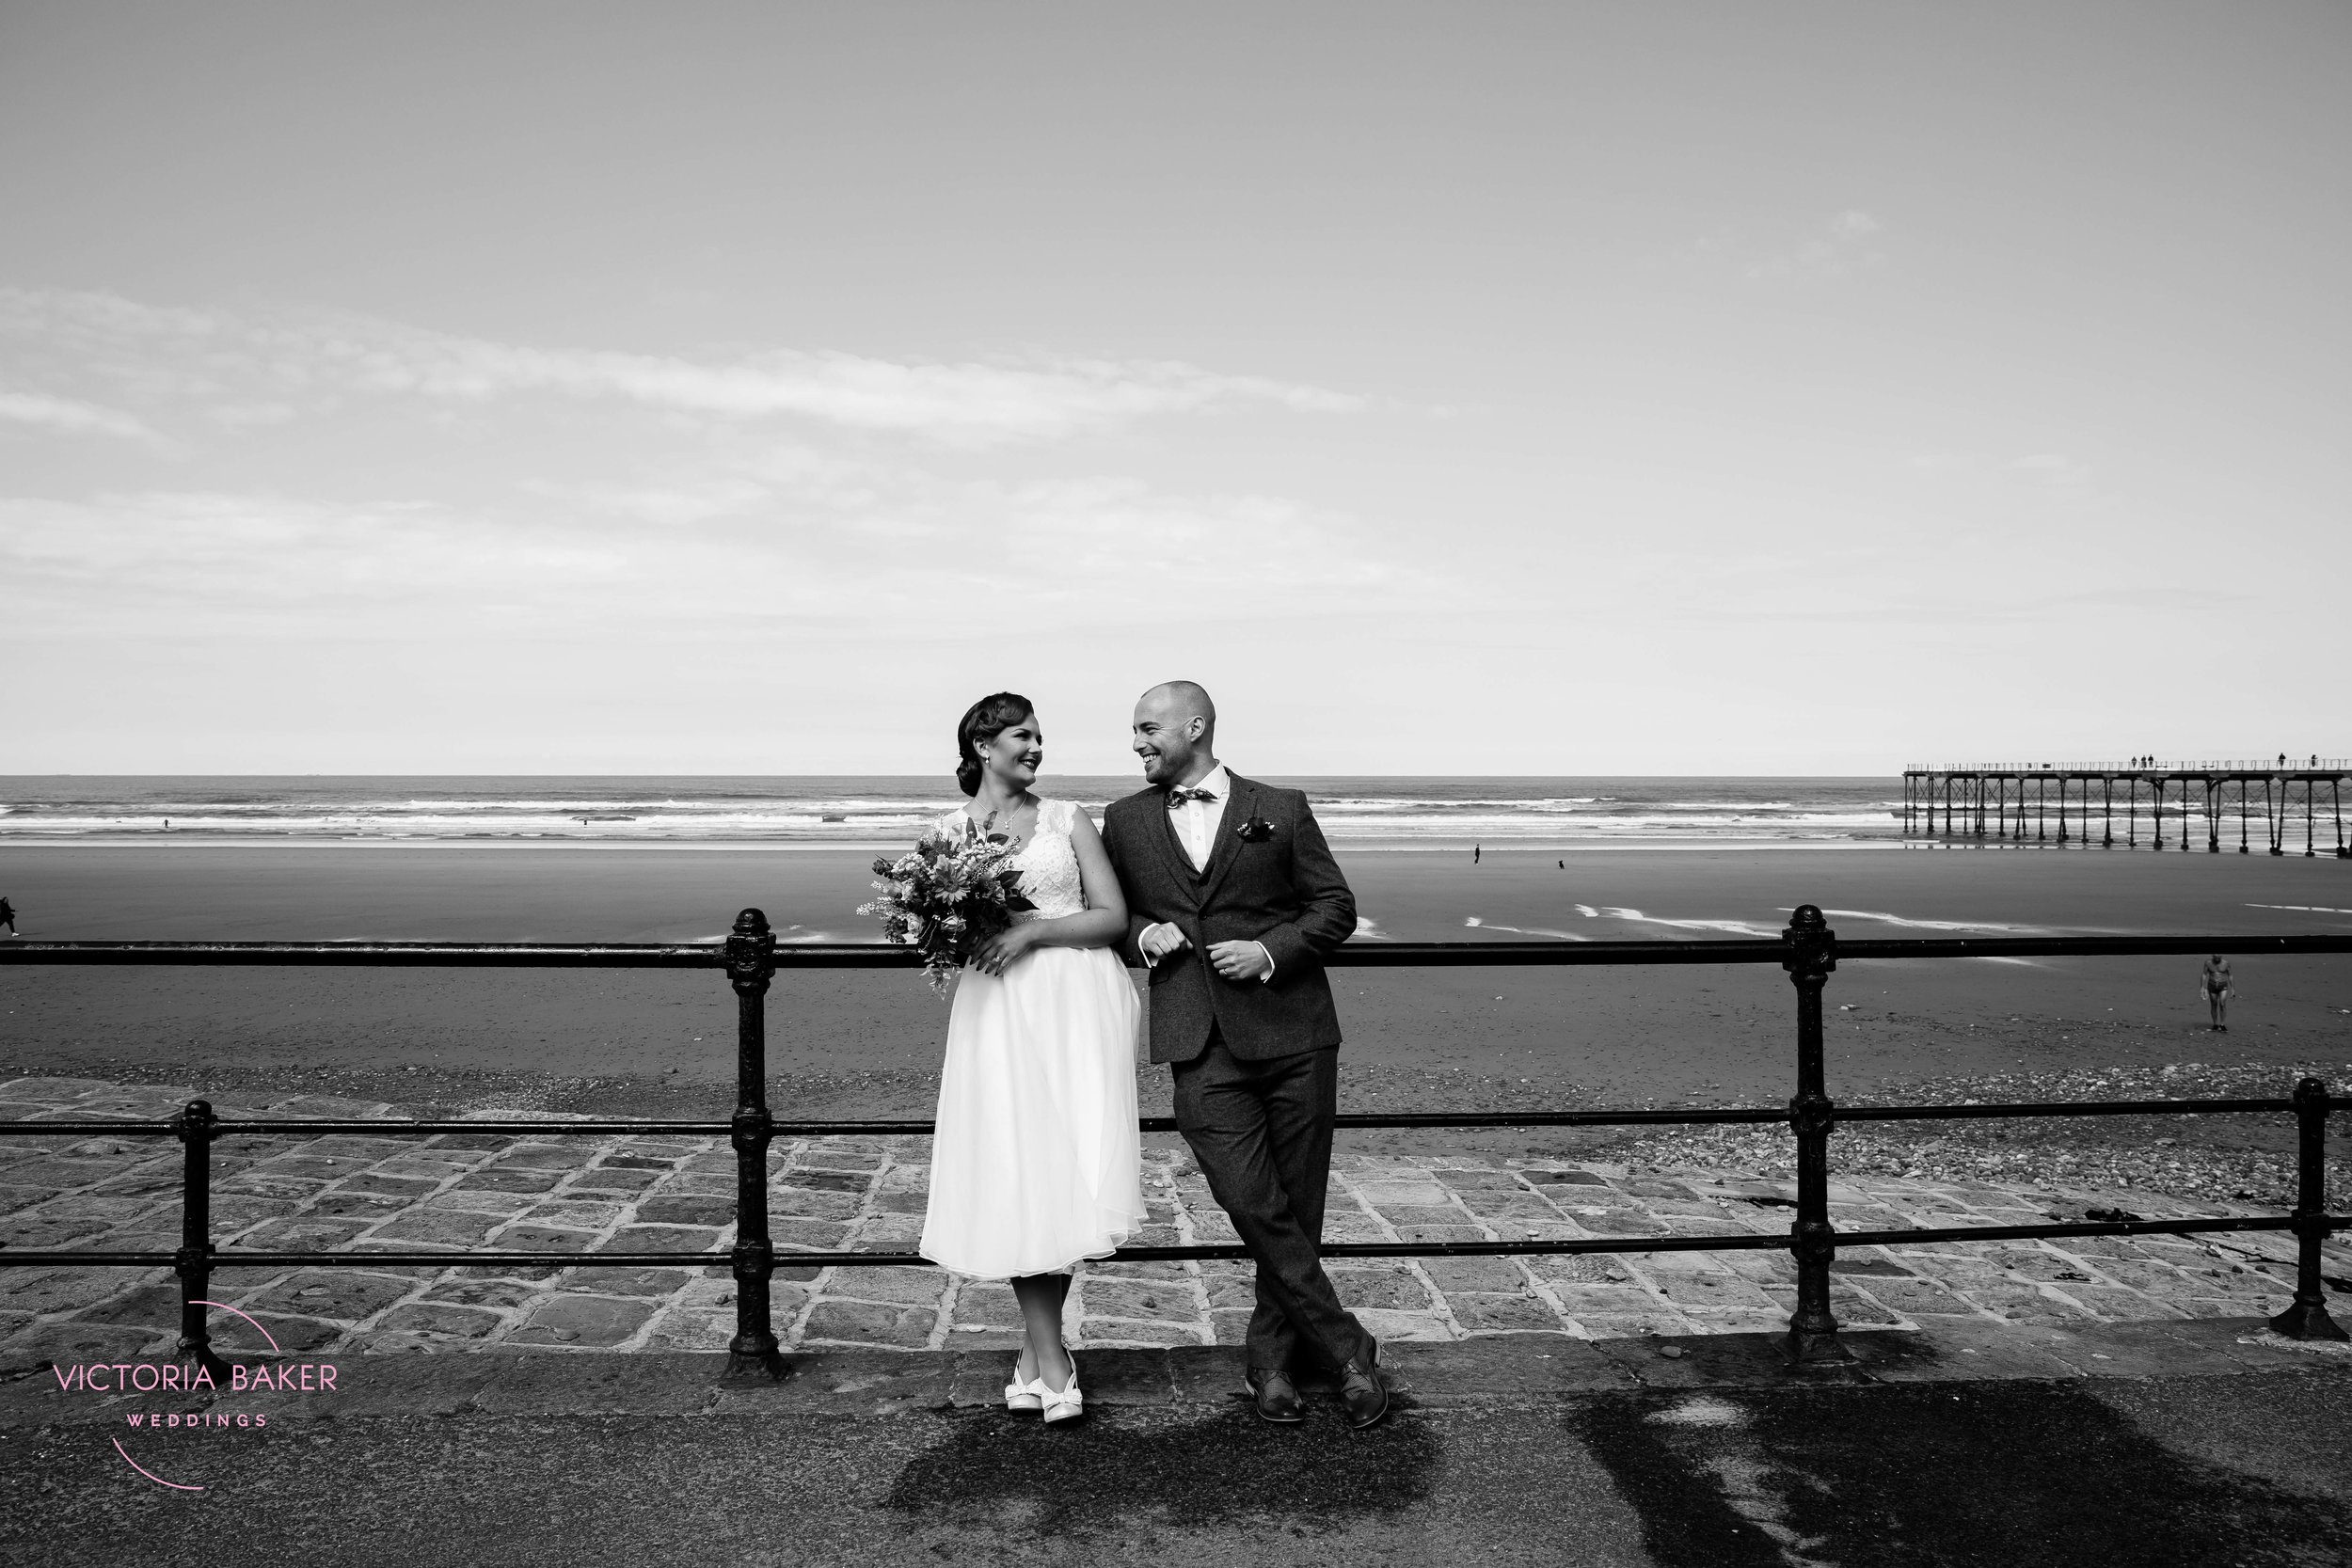 VICTORIABAKERWEDDINGSSam&AnthonySaltburnWedding-272.jpg